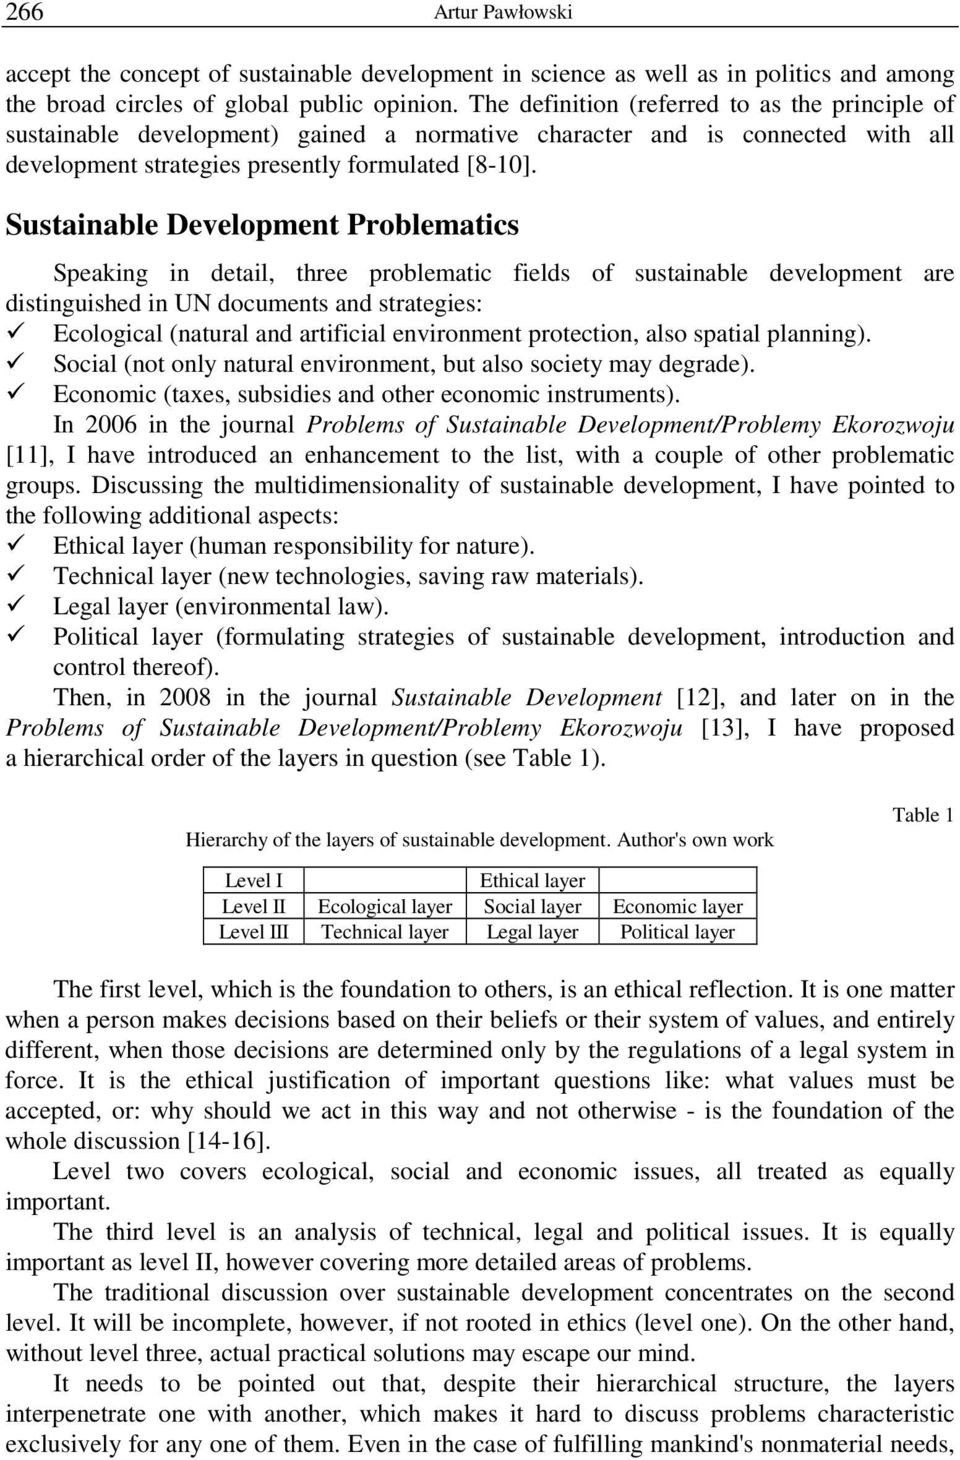 Sustainable Development Problematics Speaking in detail, three problematic fields of sustainable development are distinguished in UN documents and strategies: Ecological (natural and artificial